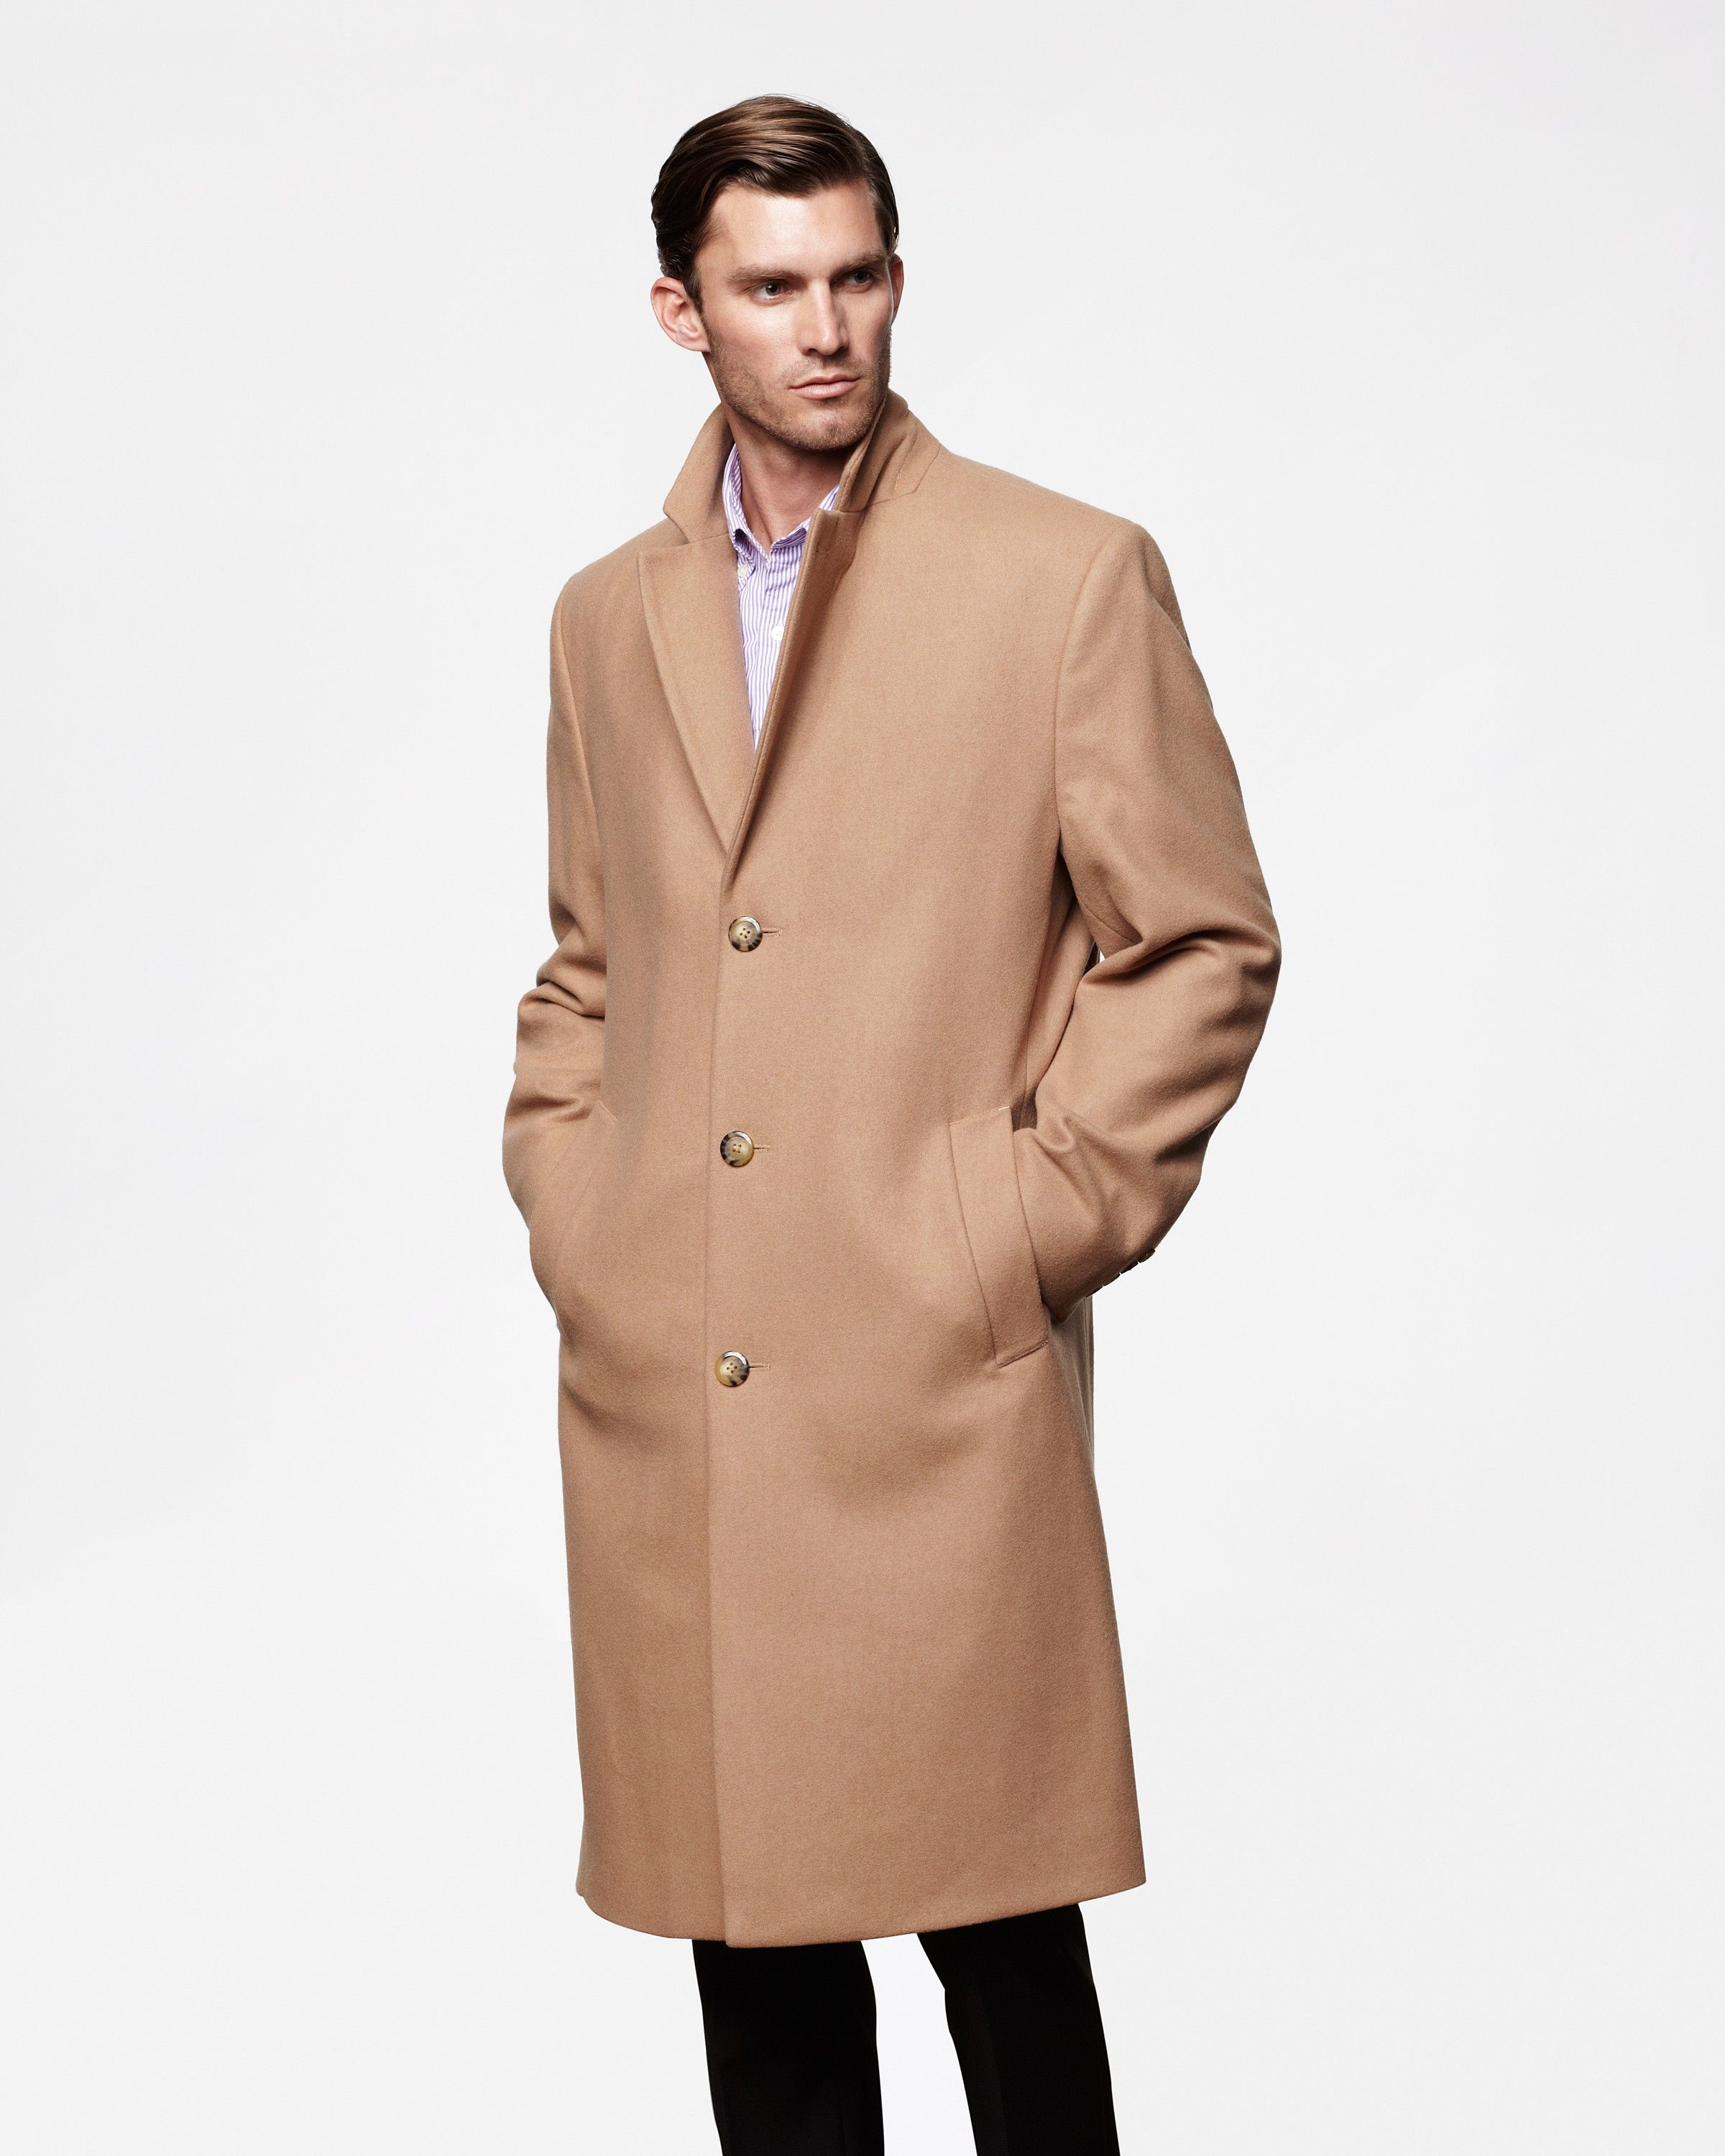 Fremont Full Length Wool Top Coat for Men | London Fog | My Style ...